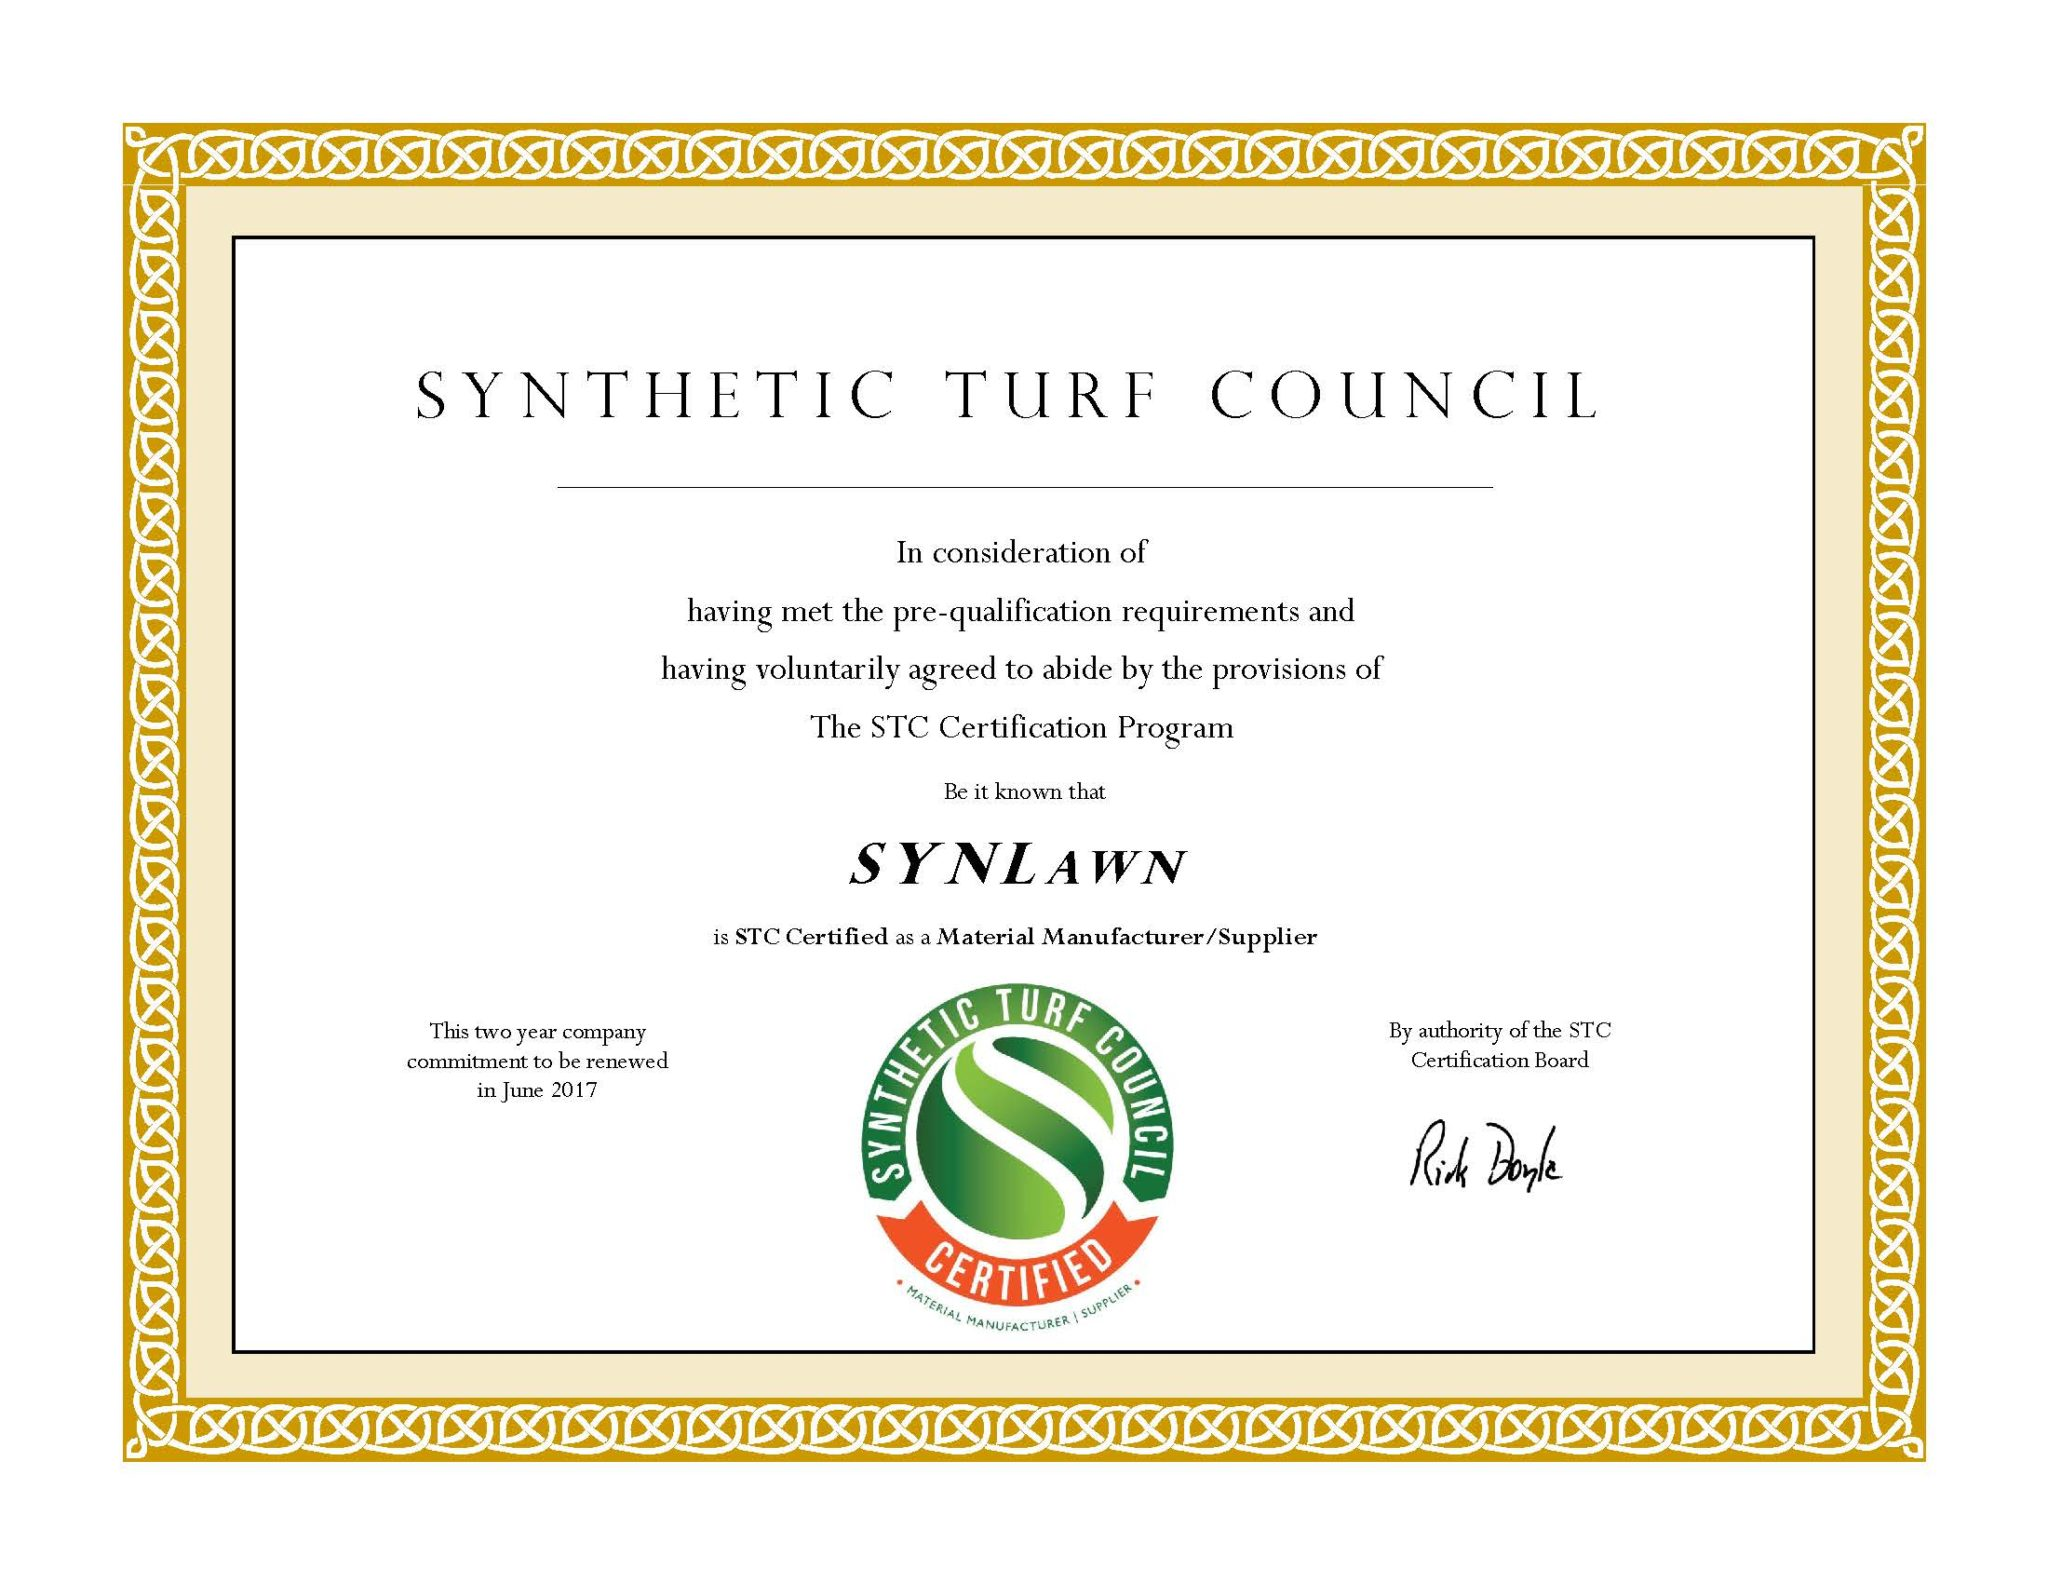 image of synlawn certificate from synthetic turf council